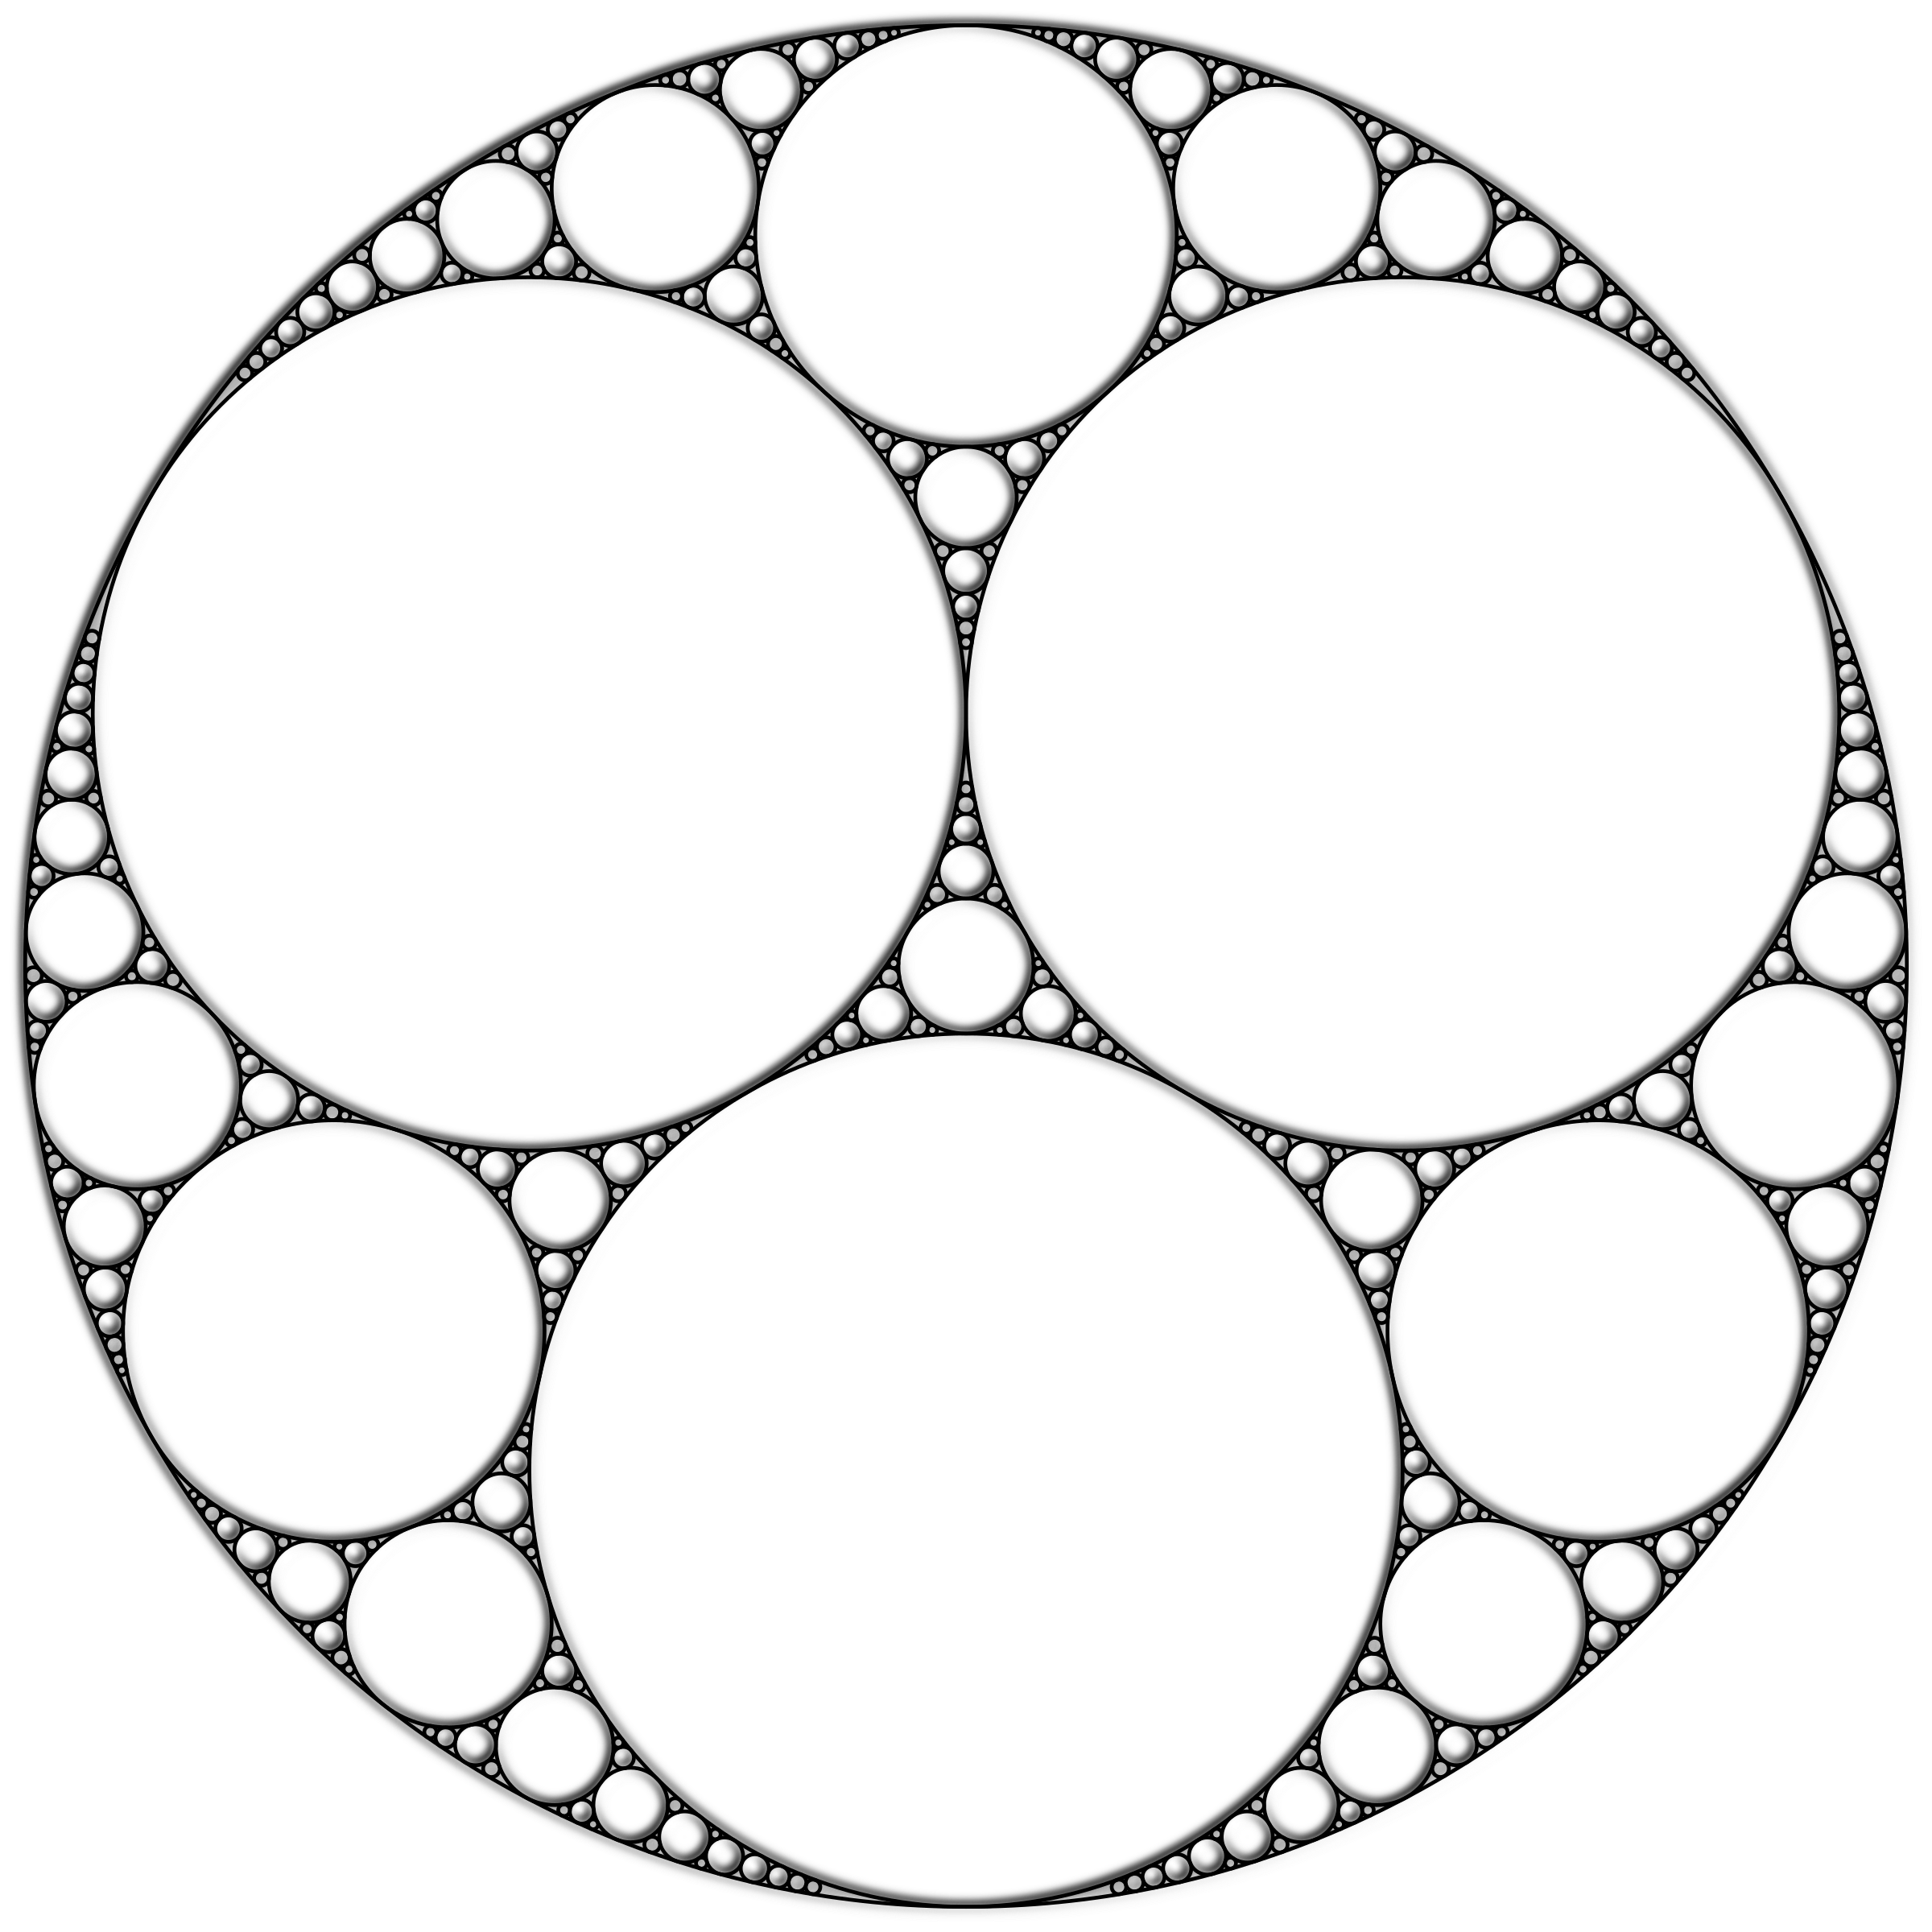 Apollonian Gasket 2 by GDJ